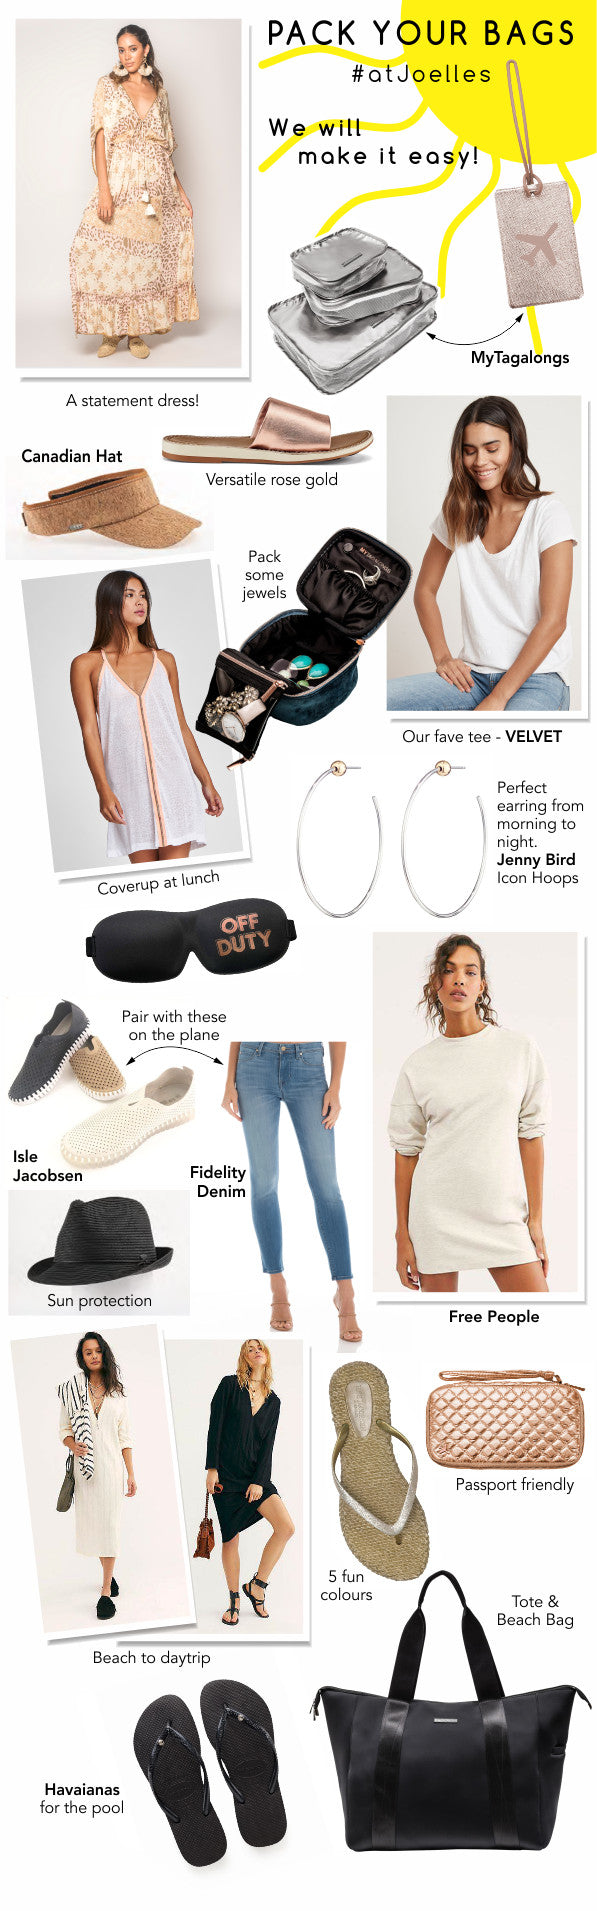 Pack your bags with these great items available at Joelle's. Clothing, accessories and more.